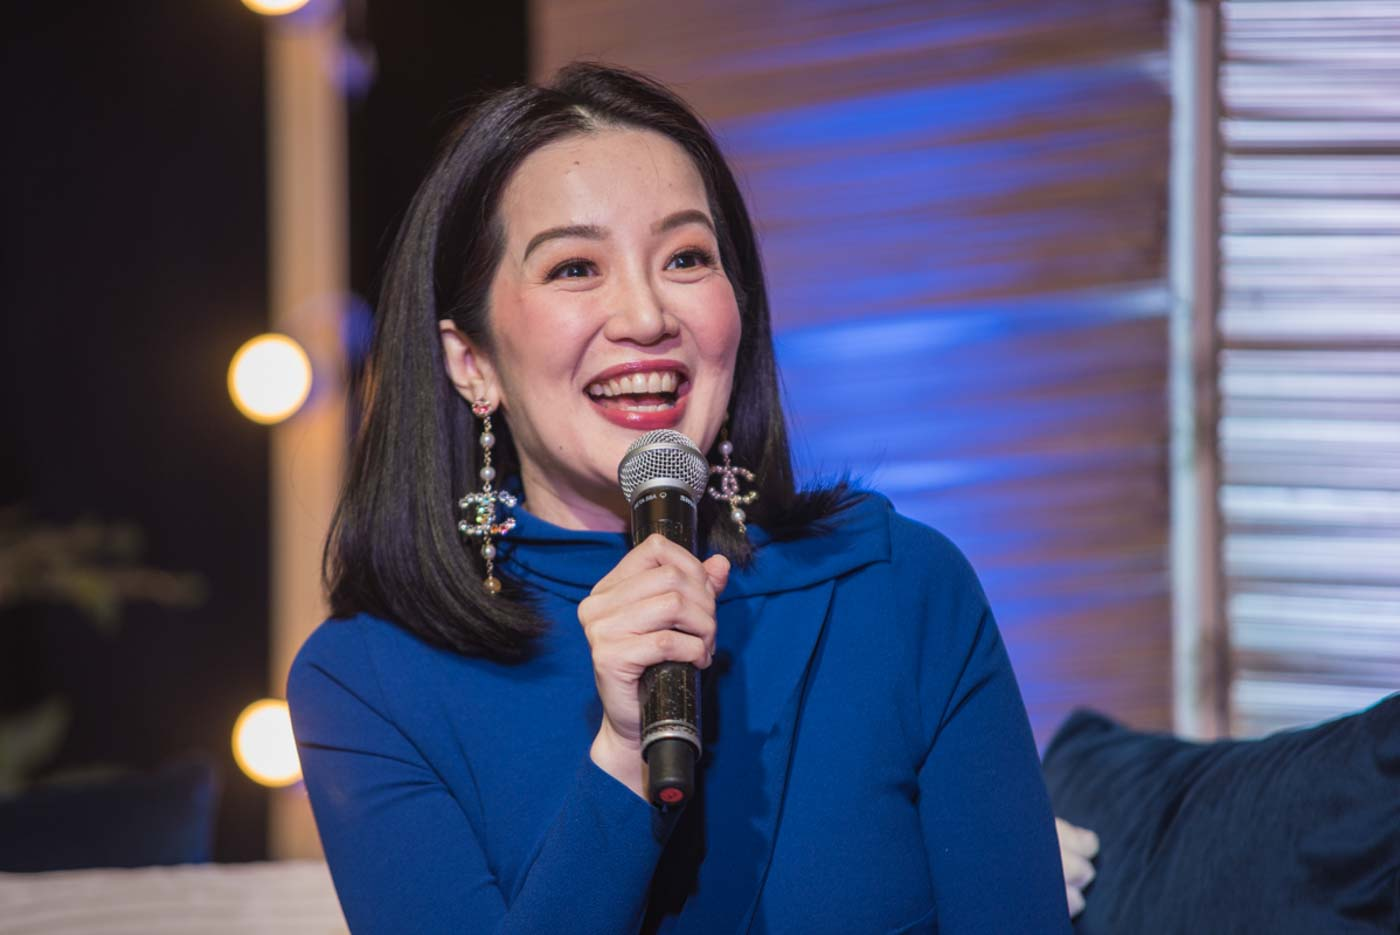 OVER IT. By November 2019, Kris Aquino seems to have put her feud with Nicko Falcis behind her. File photo by Rob Reyes/Rappler